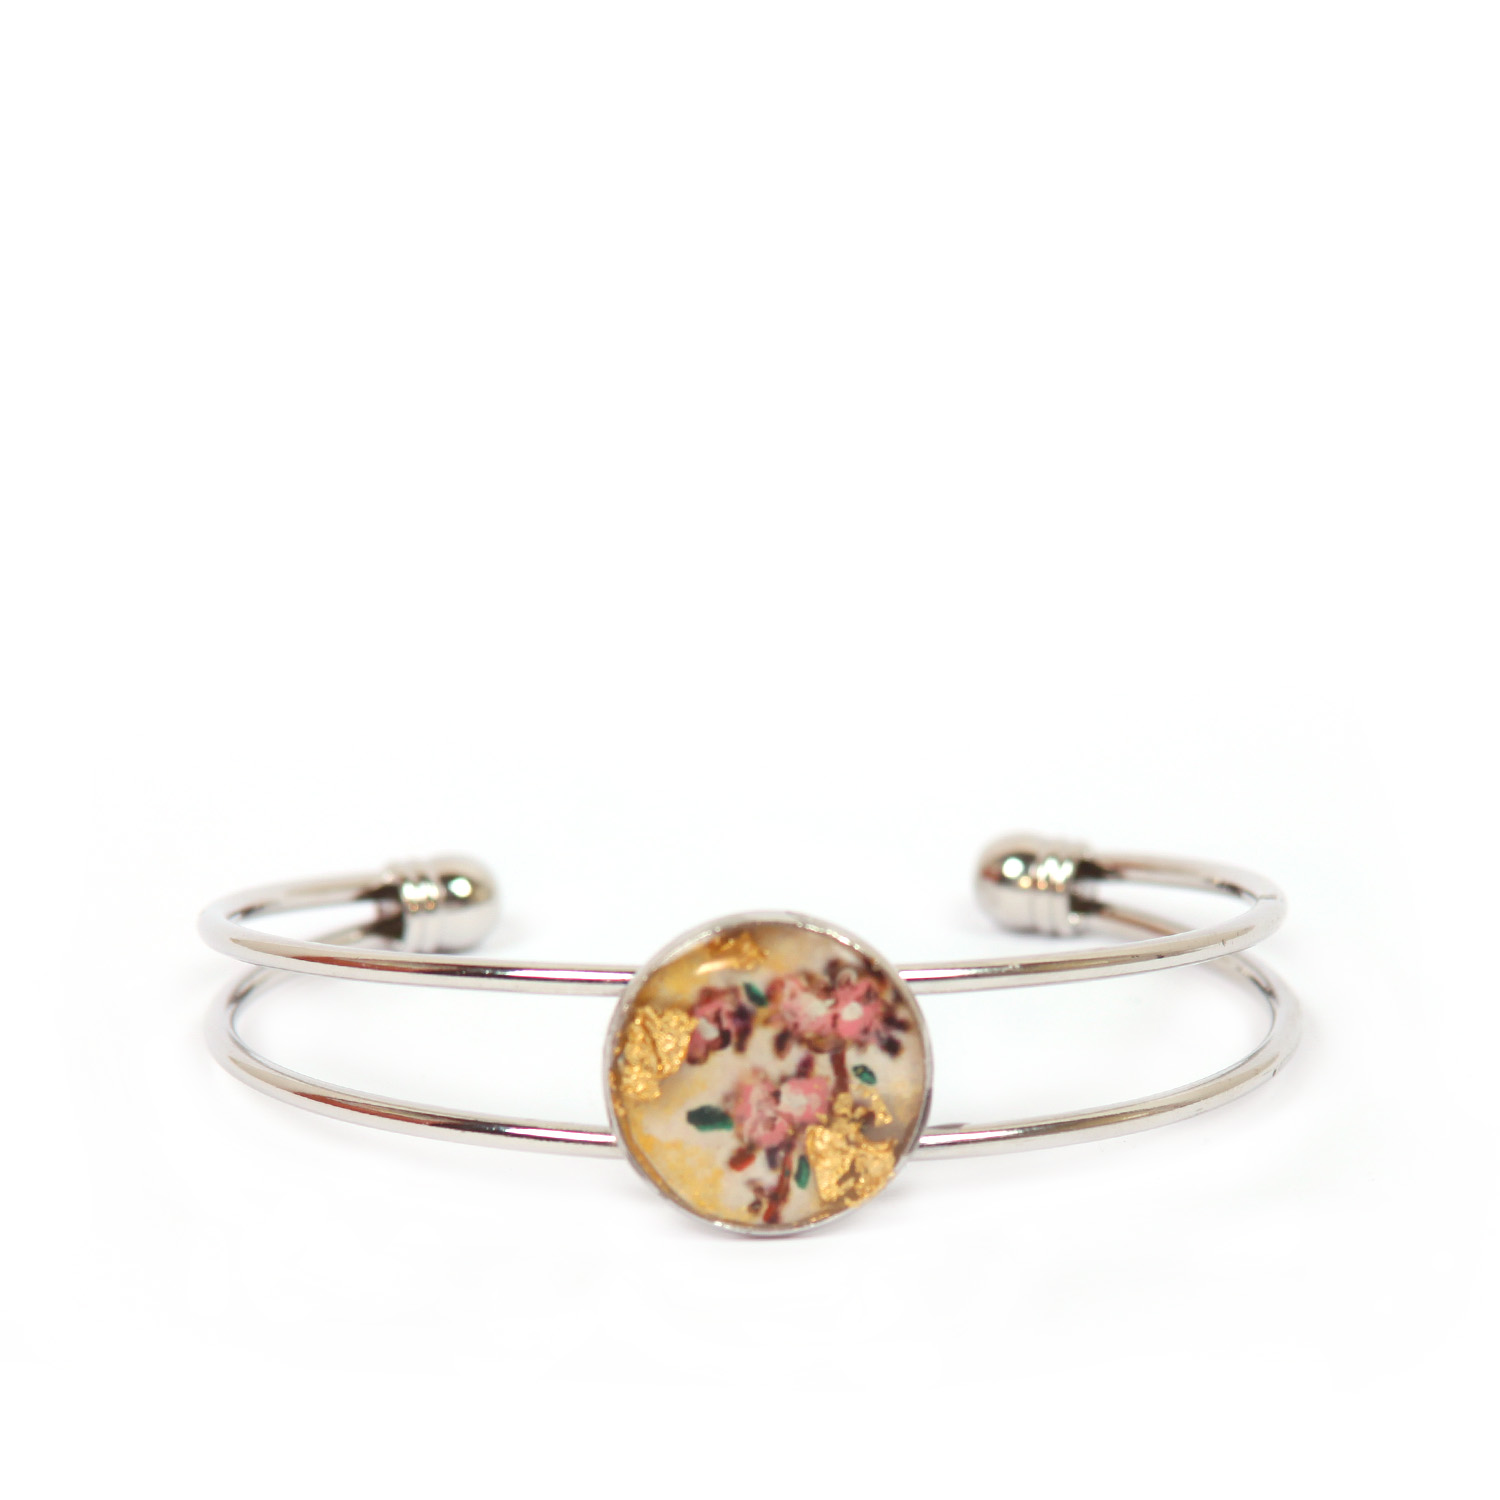 Hand-painted bangle - Peach flowers